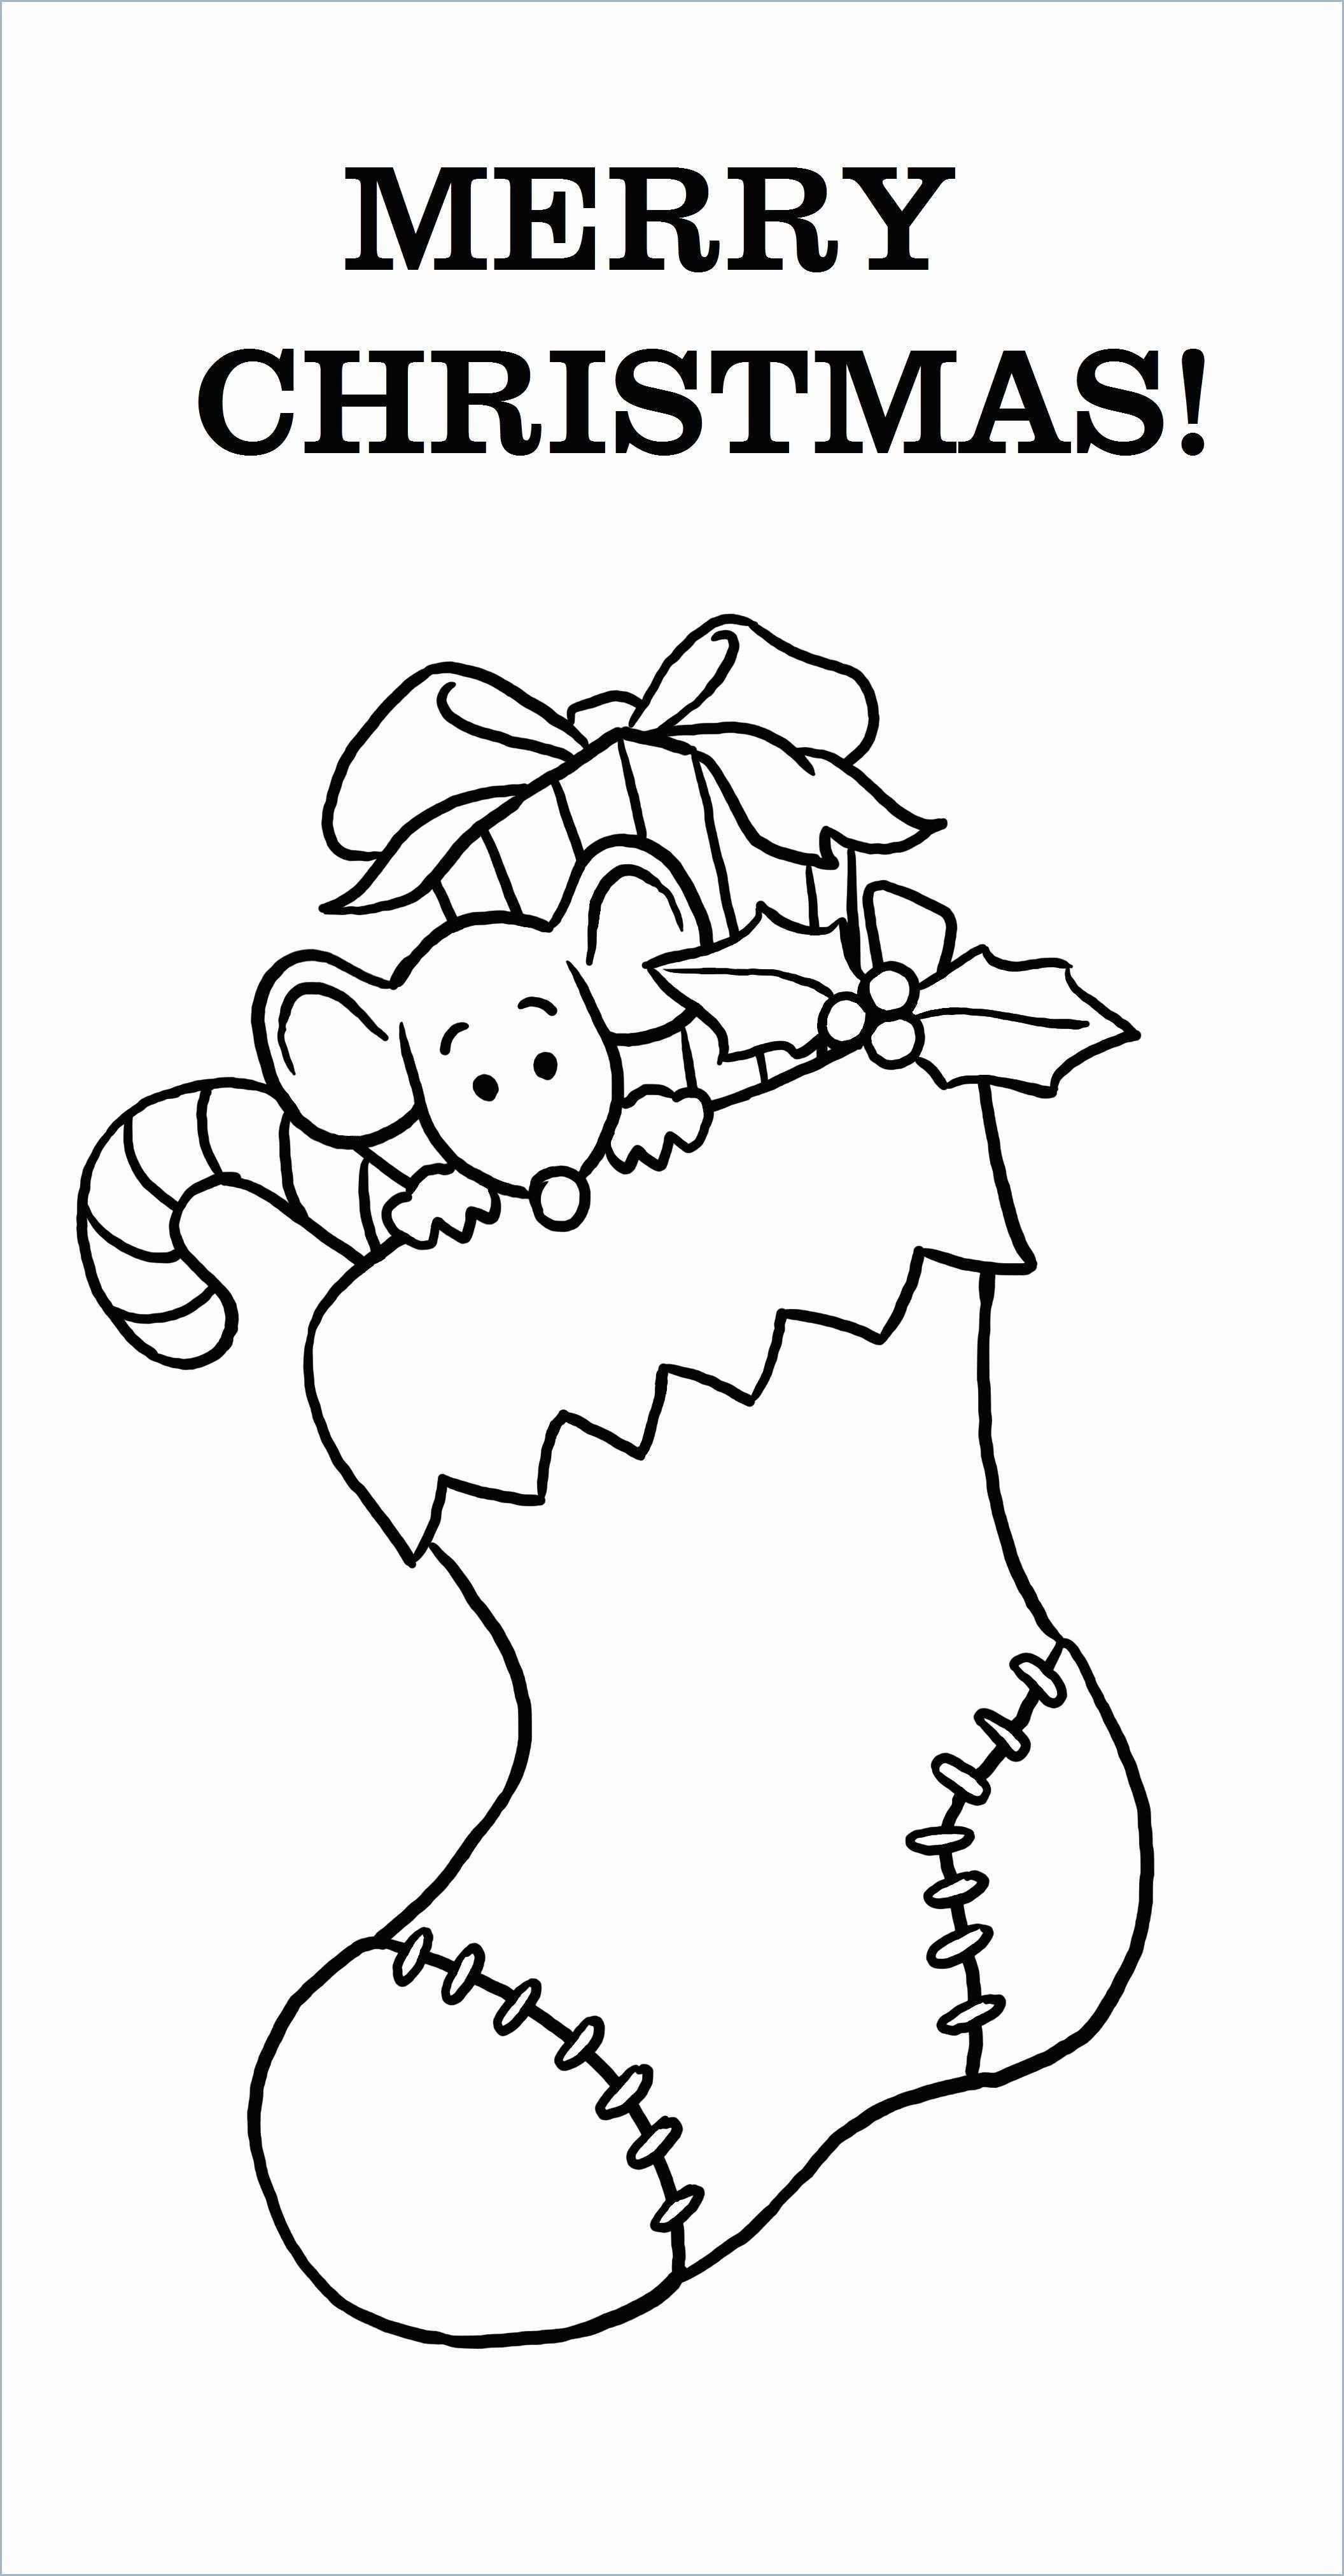 Coloring Ideas : Christmas Card Coloring Pages Merry Page Fresh Free - Free Printable Christmas Cards To Color